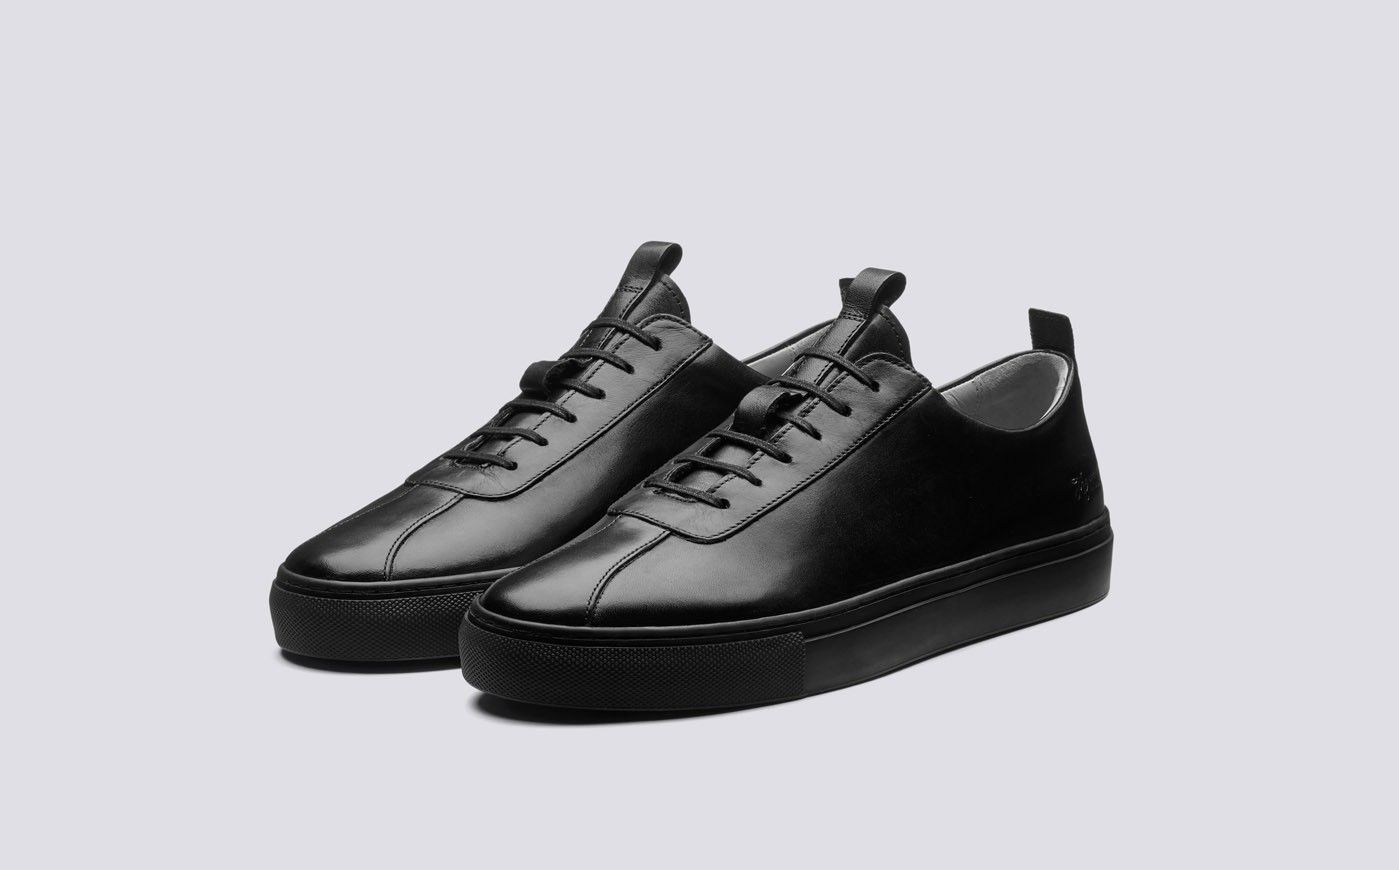 Sneakers for Men in Black Leather in